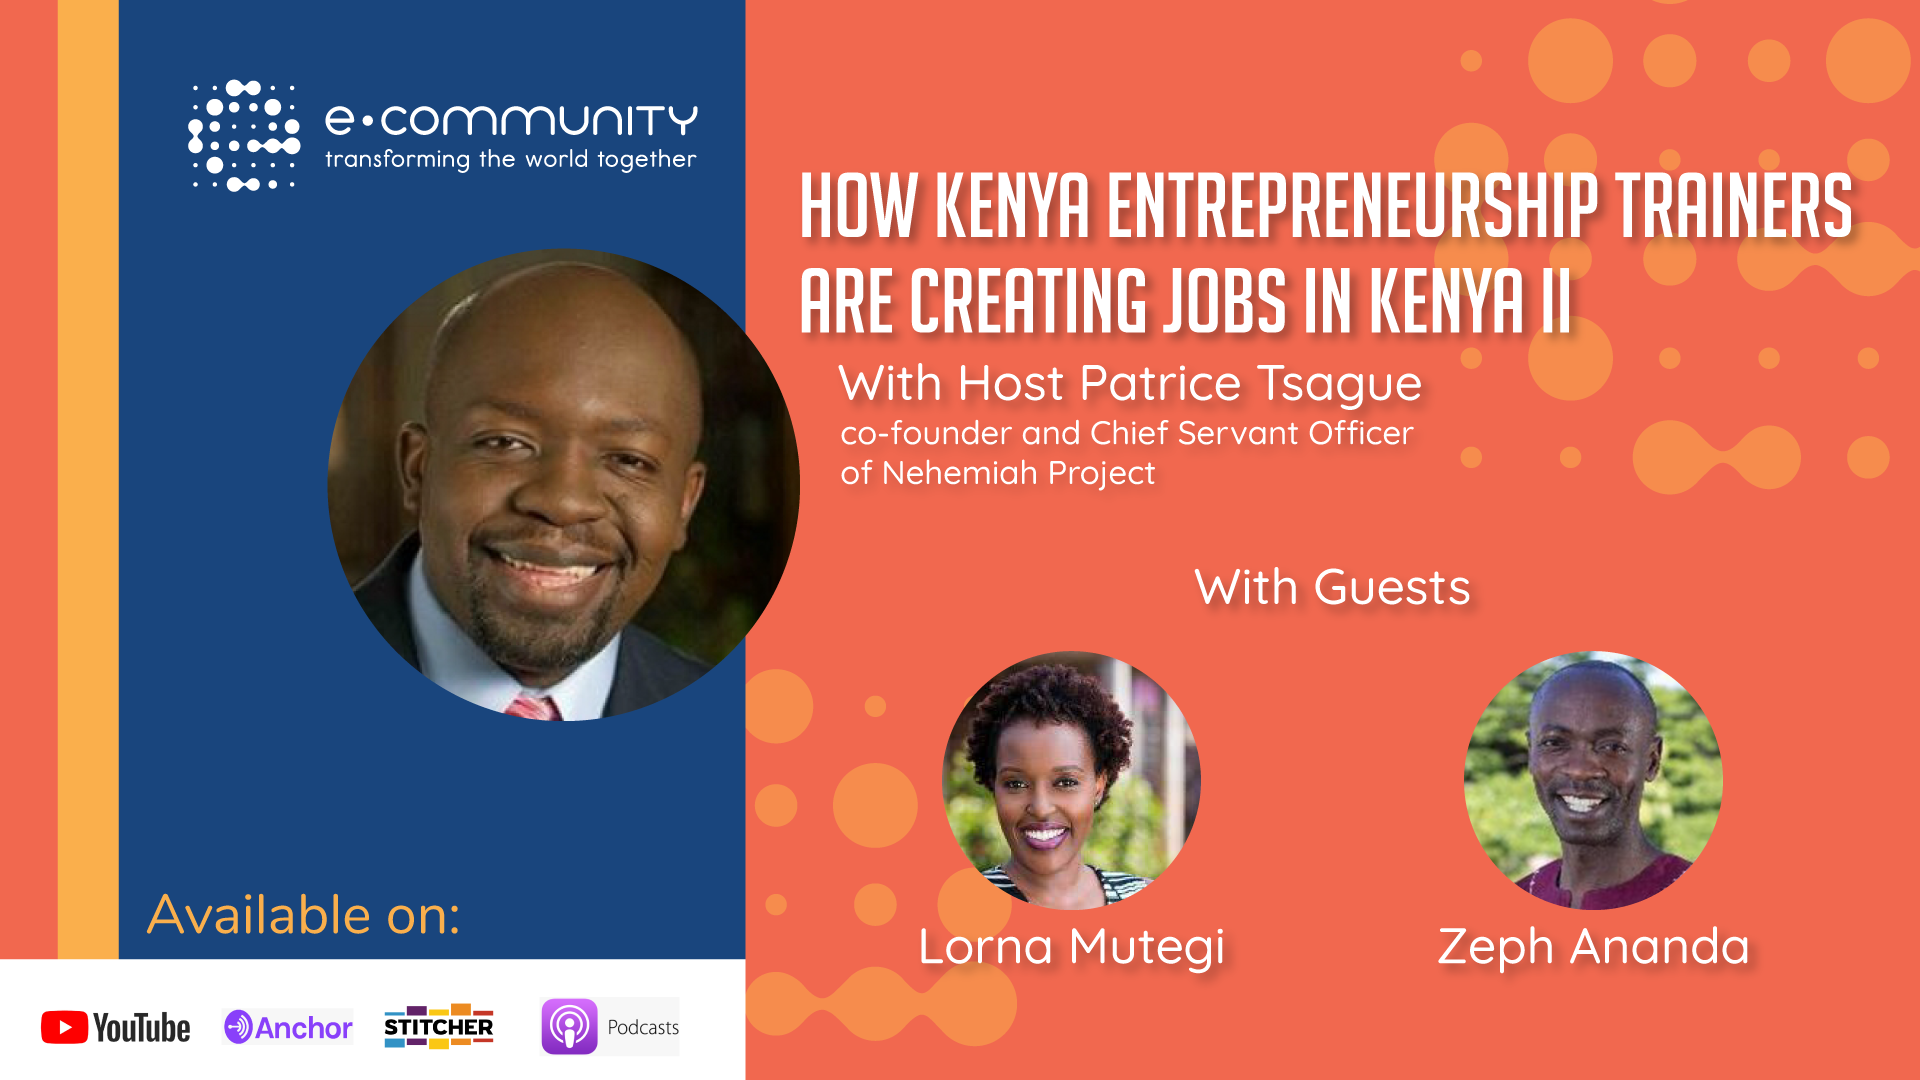 How Kenya Entrepreneurship Trainers are creating jobs in Kenya Part II